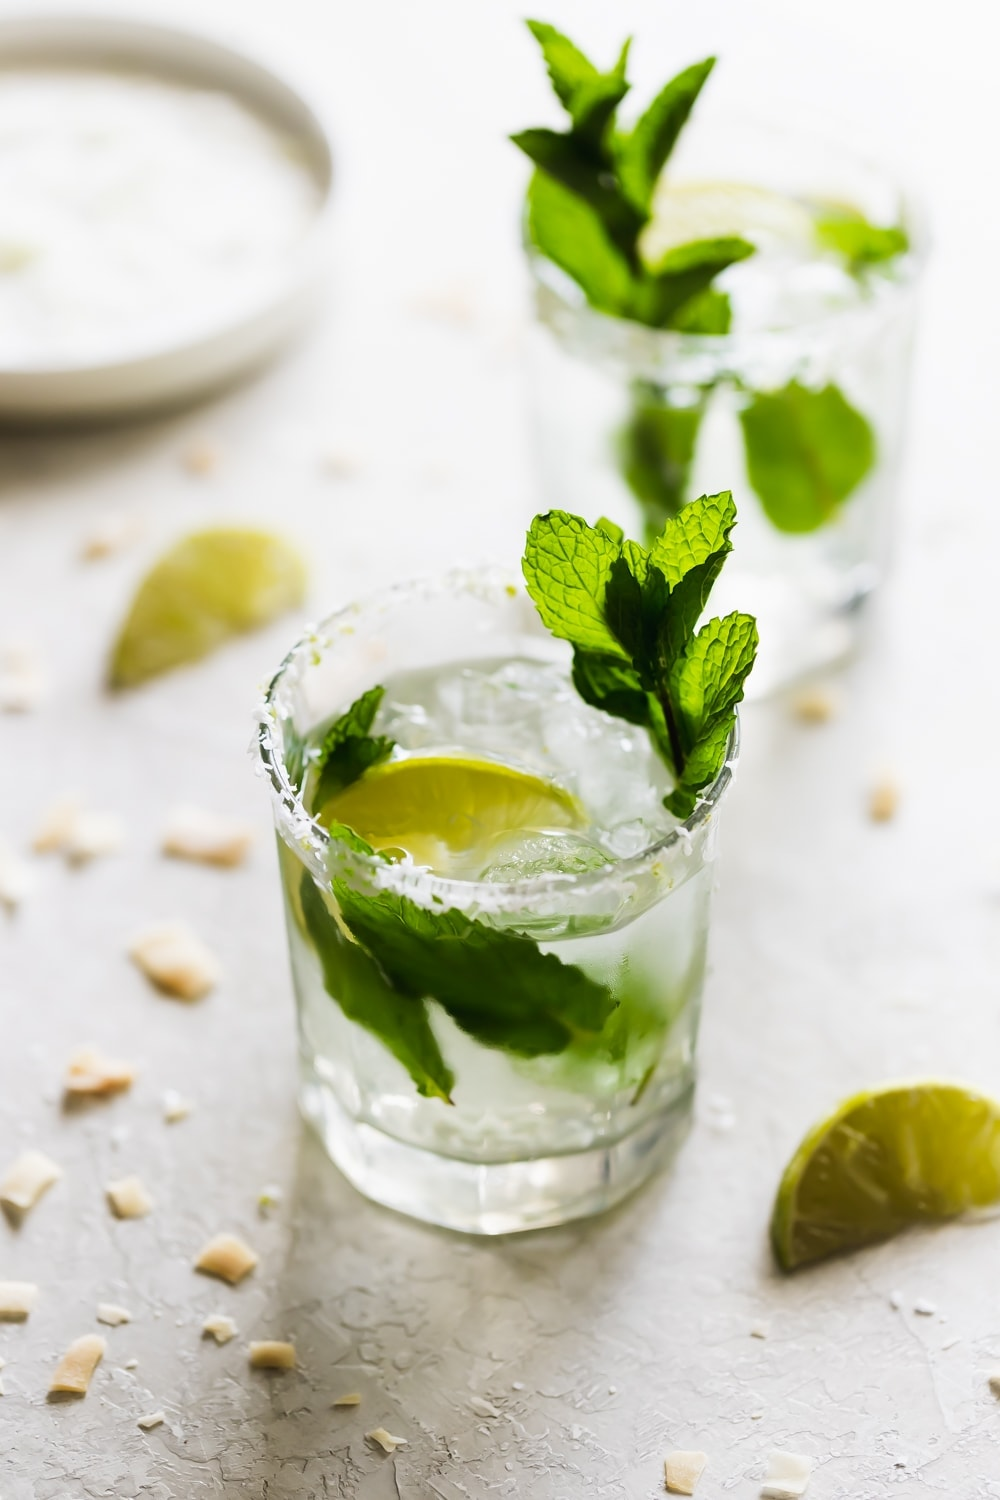 two glasses of coconut mojito drink with mint leaves and lime wedges